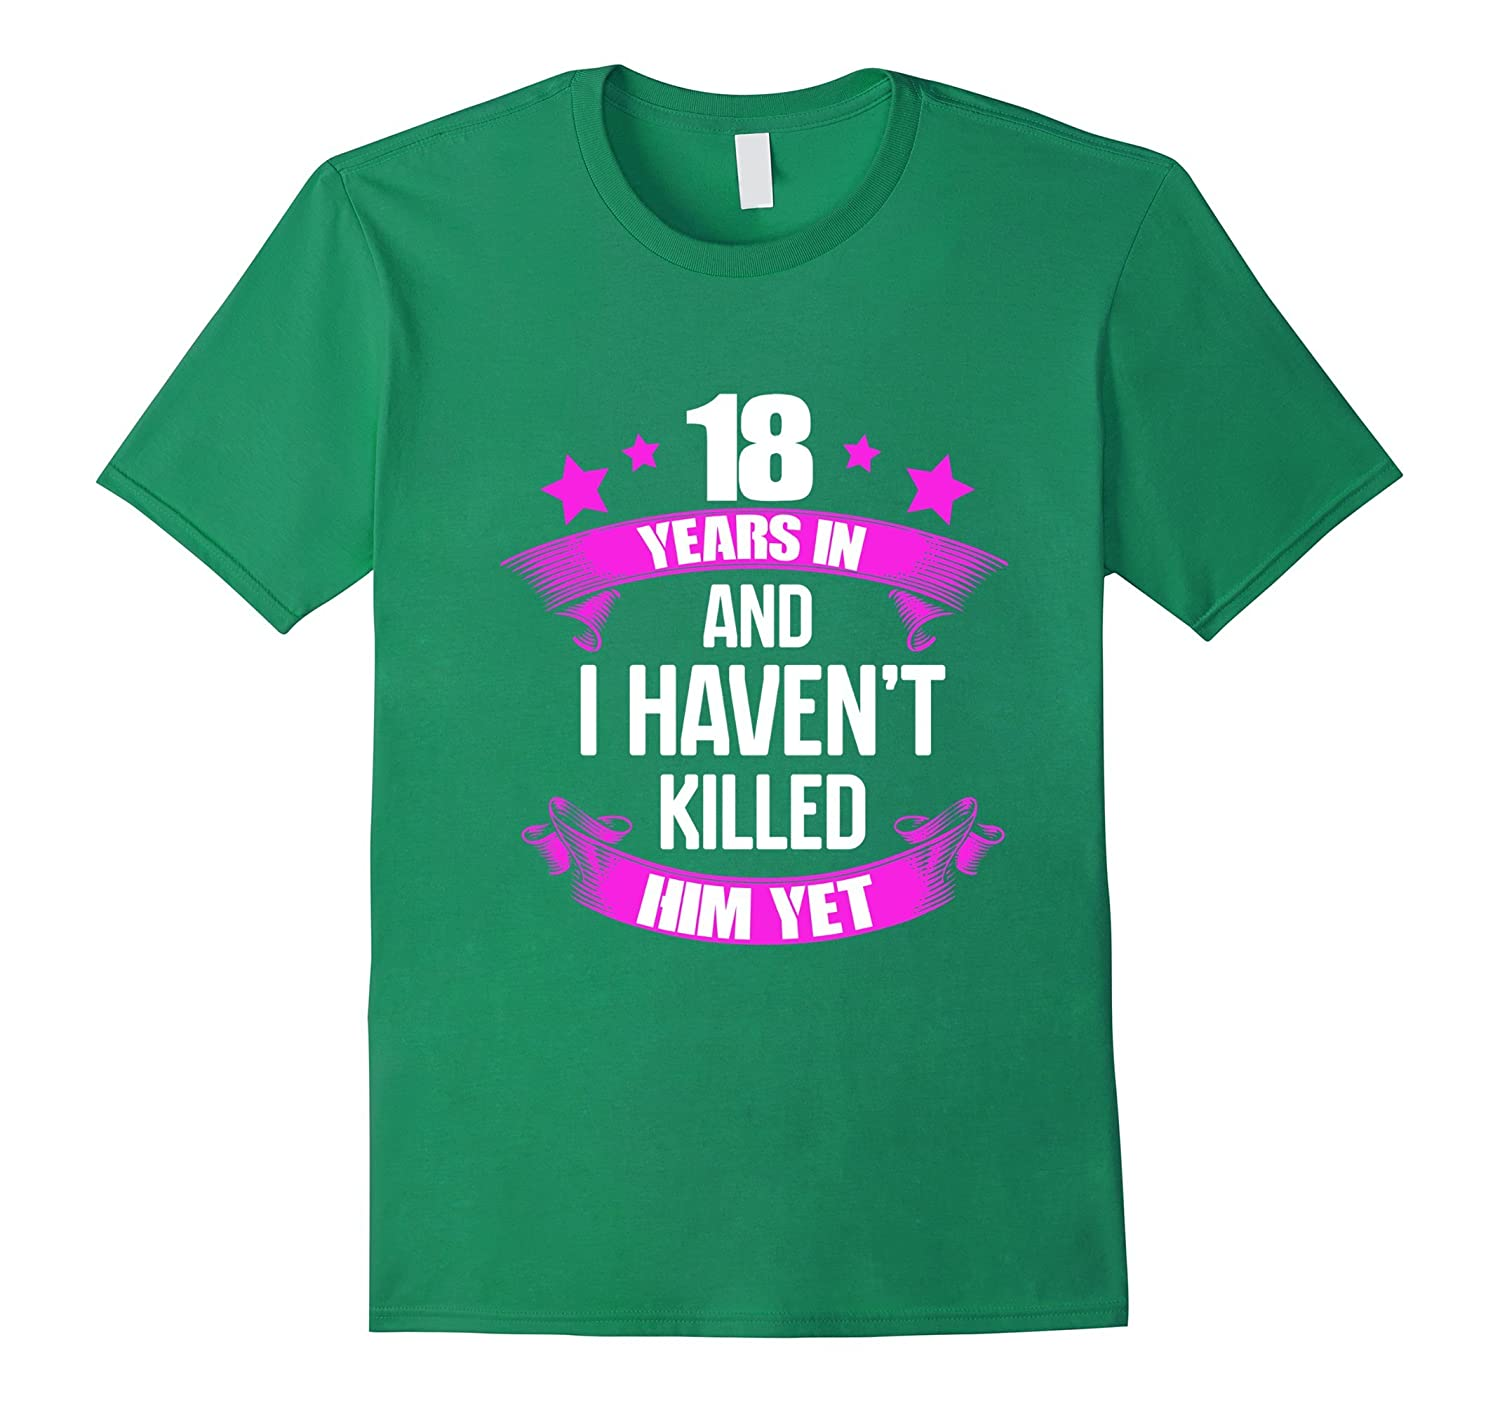 Gifts For 18th Wedding Anniversary: 18th Wedding Anniversary T-Shirt For Wife Funny Gifts